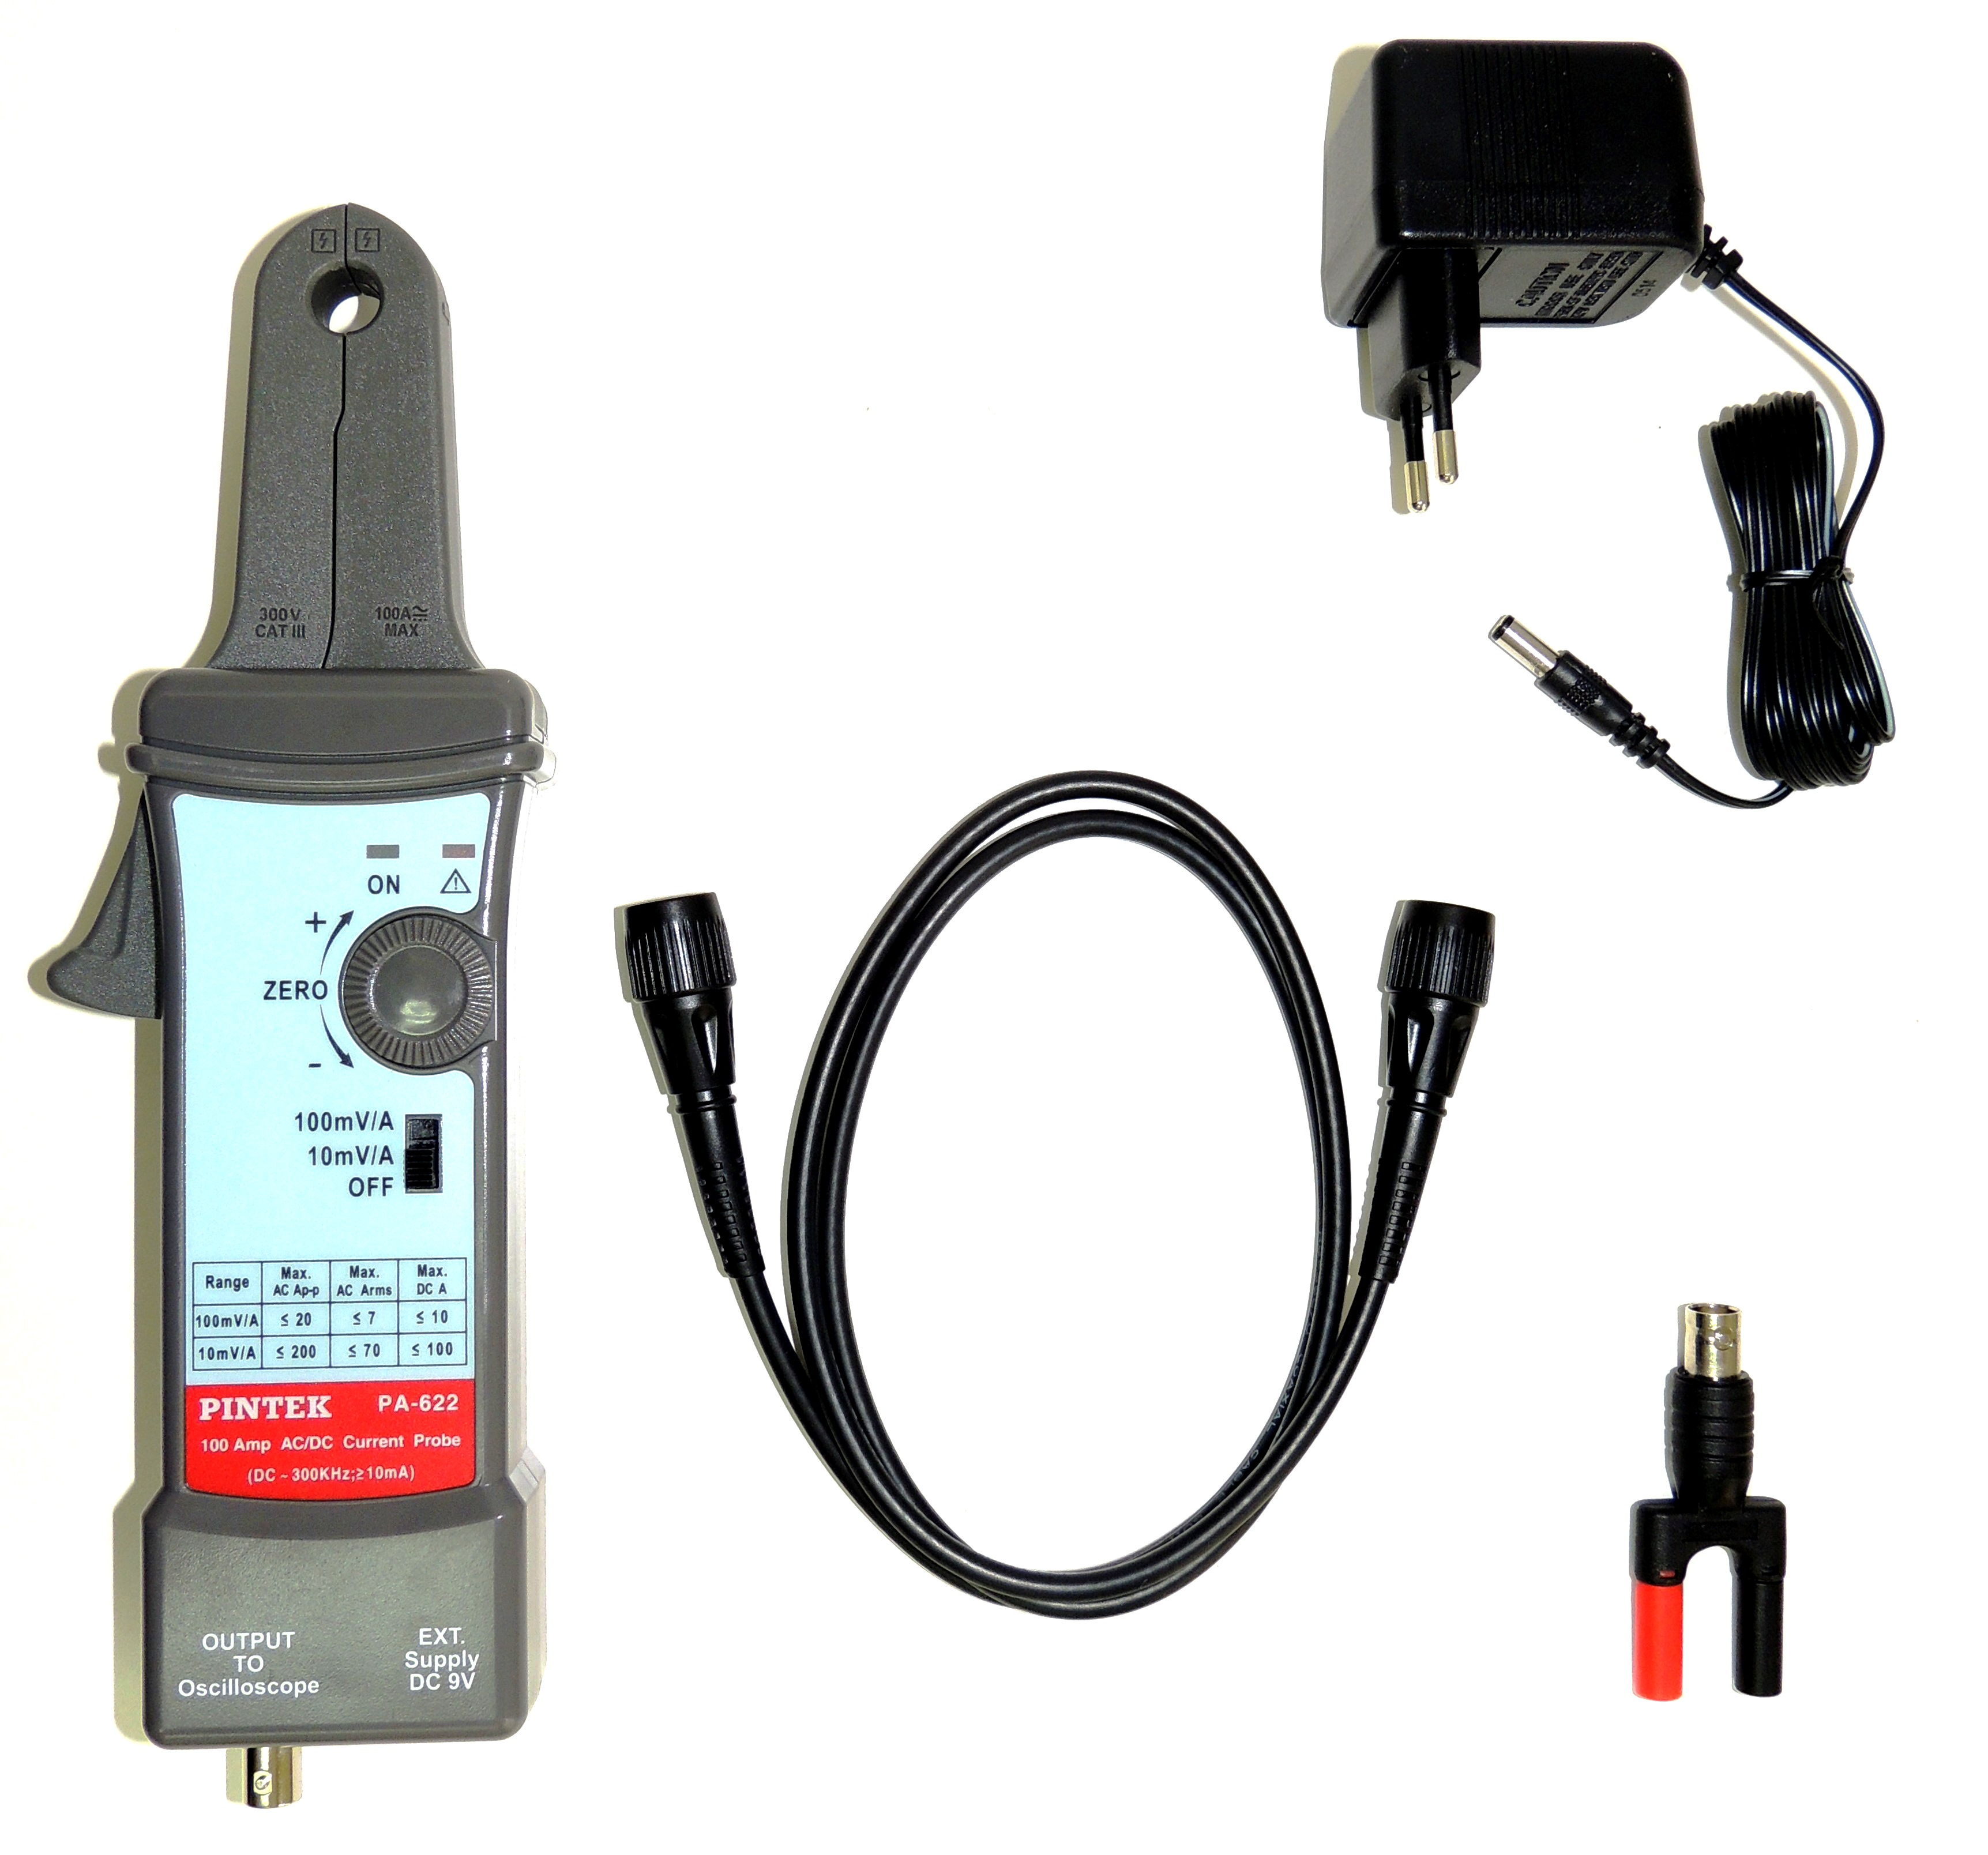 PA-622 Current Probe - Accessories